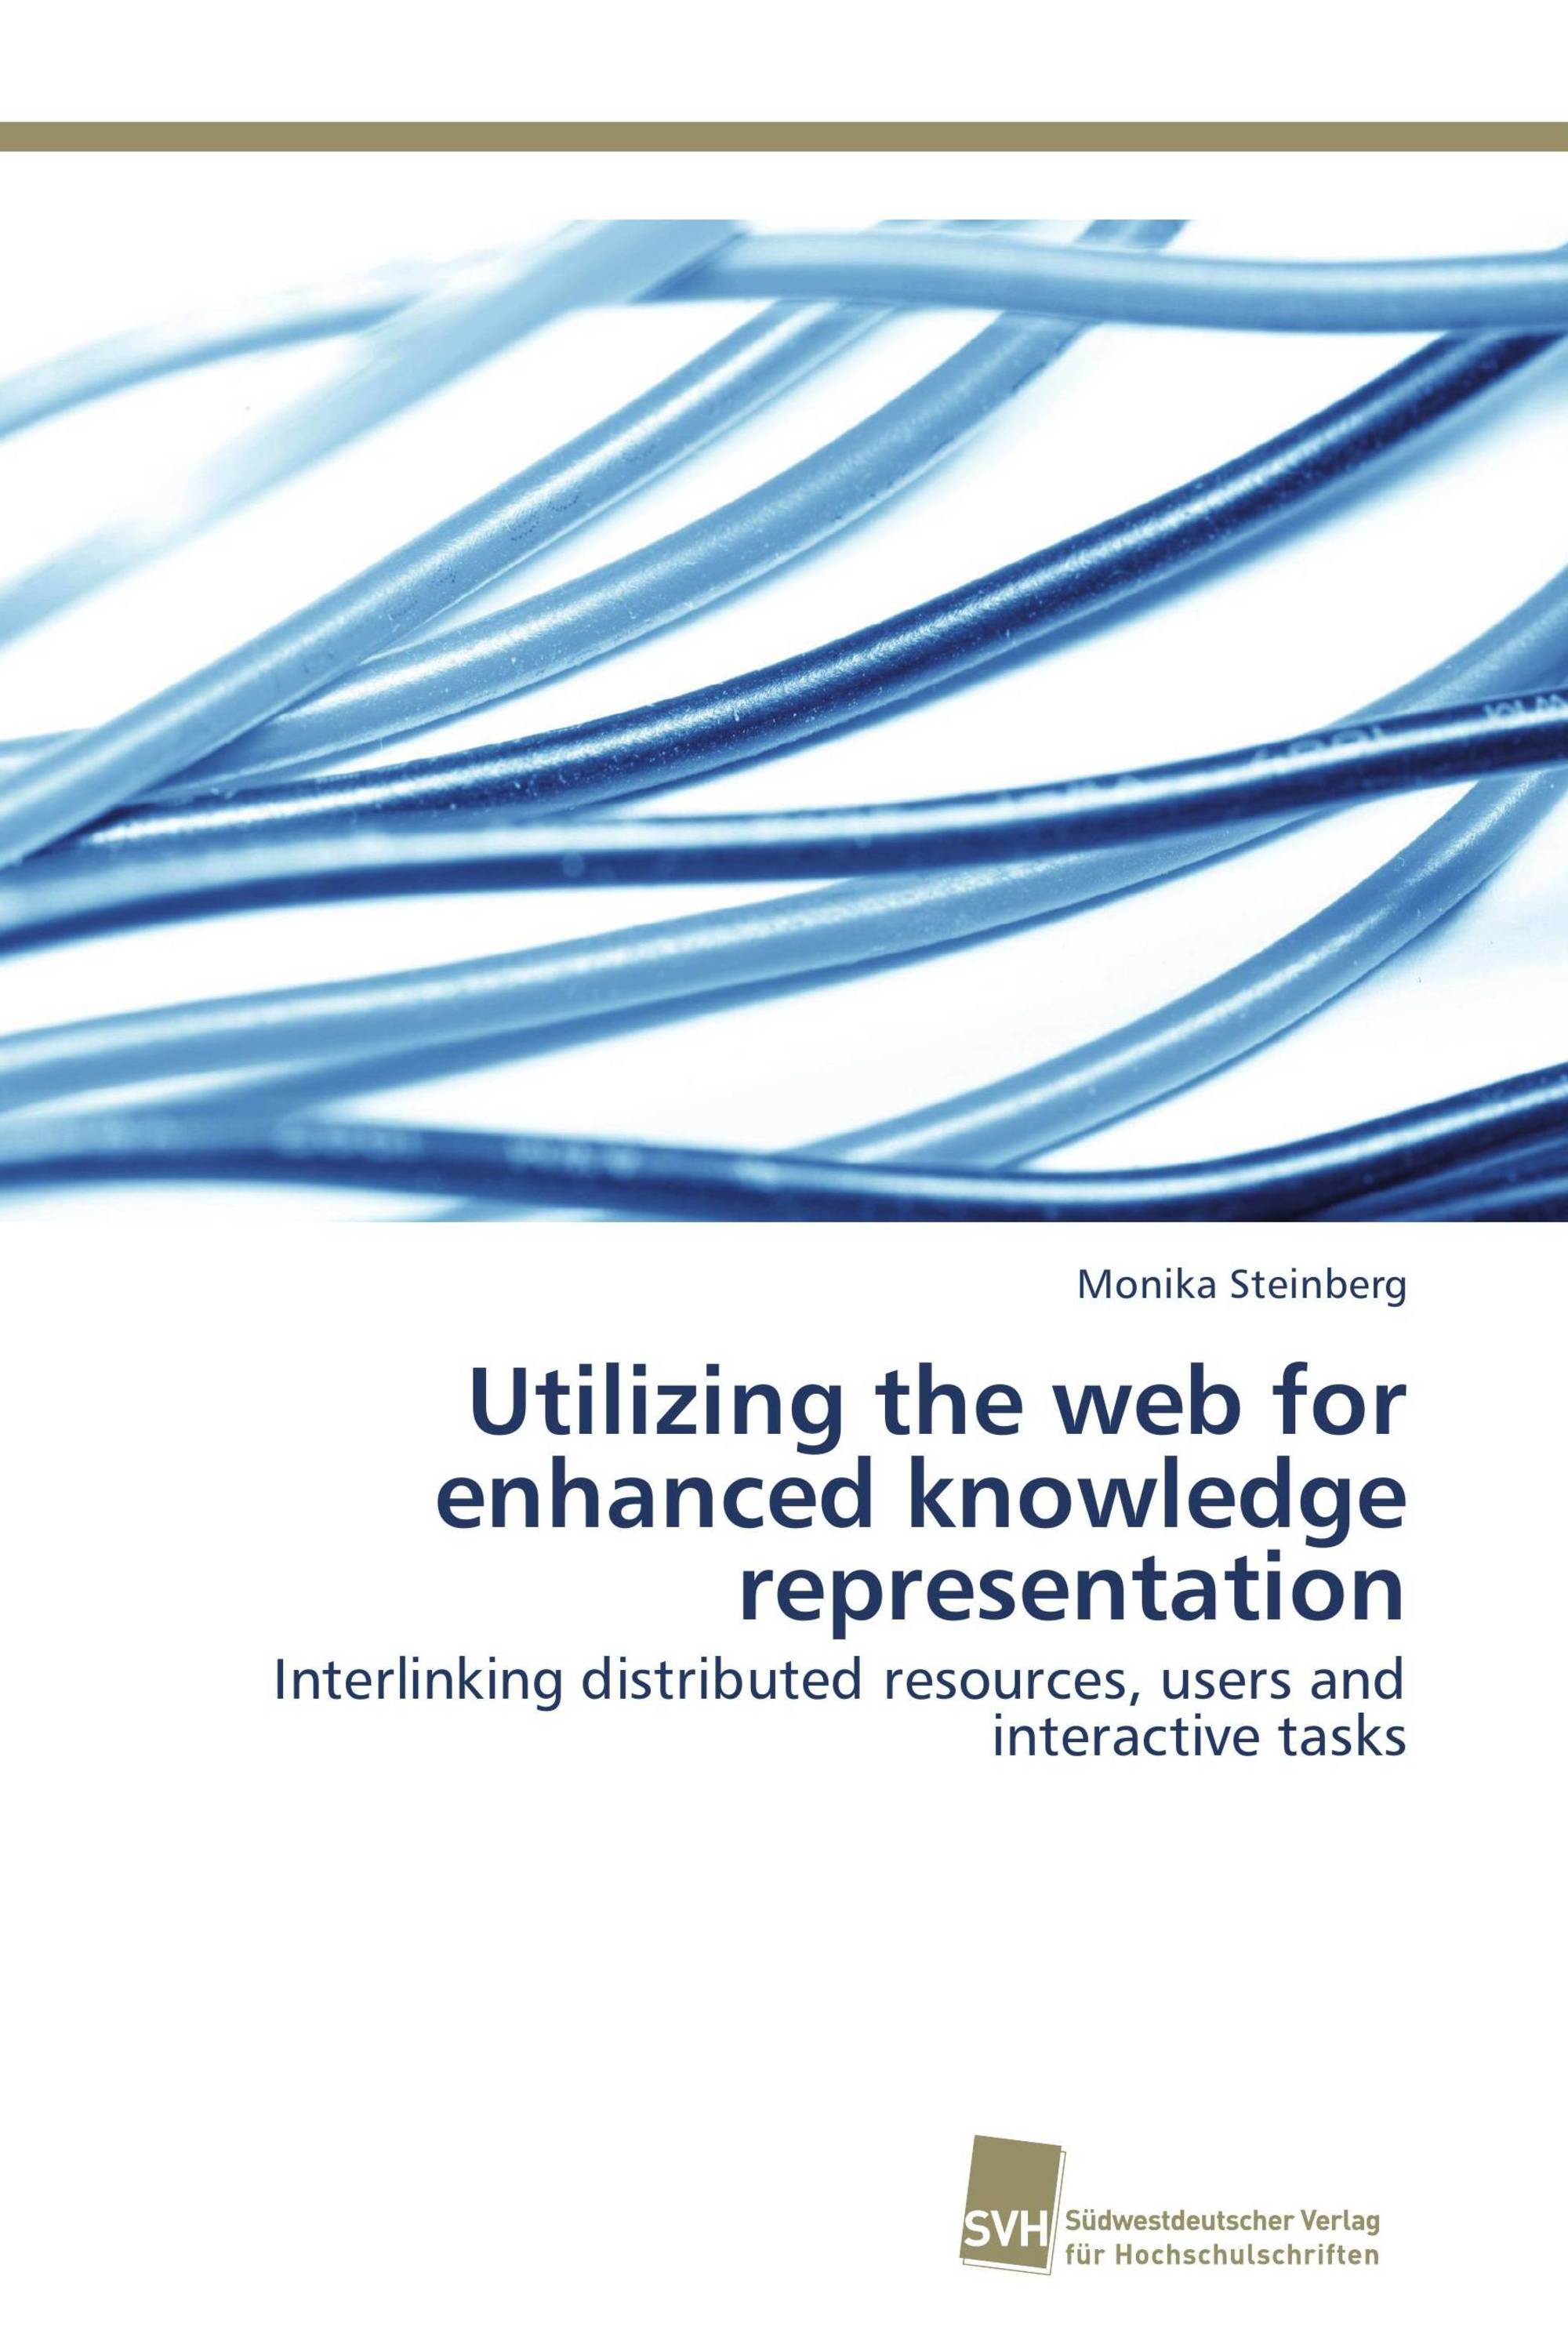 Utilizing the web for enhanced knowledge representation